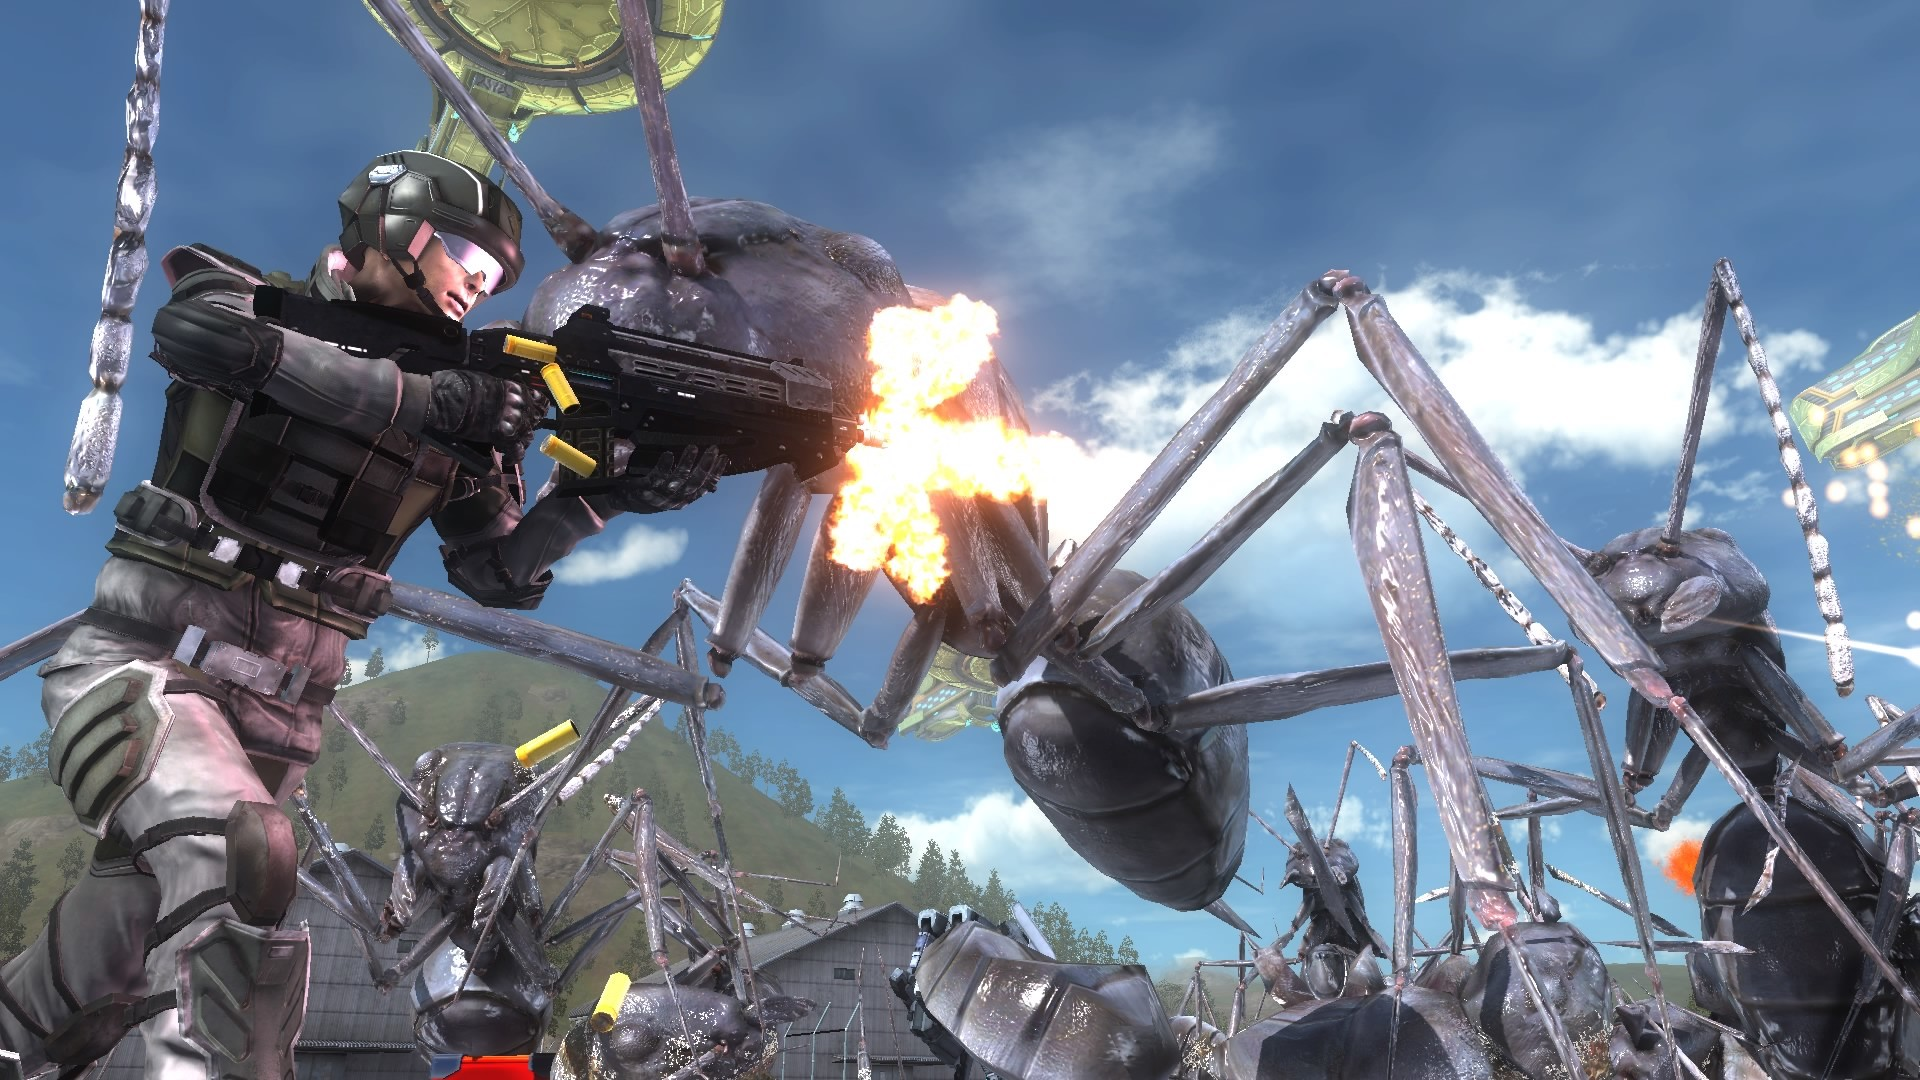 Earth Defense Force 5 is coming to Steam this week | PC Gamer